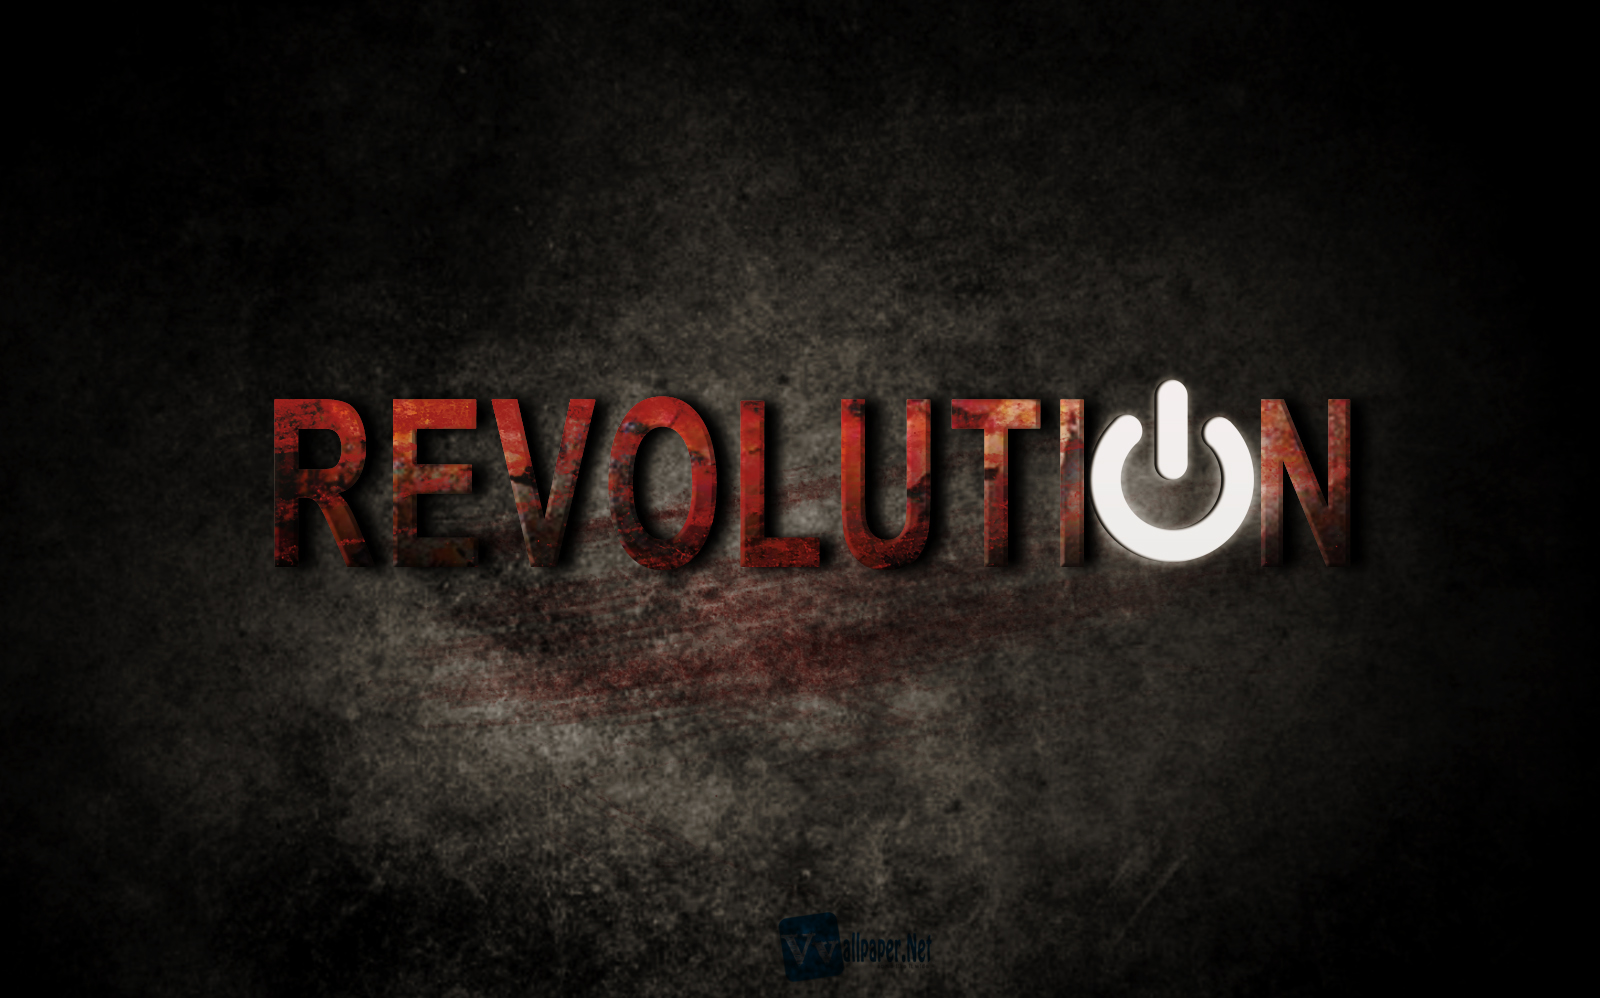 http://4.bp.blogspot.com/-VRacH2WDAAI/UKATbttPfQI/AAAAAAAAGBg/aiB1uZtwJjA/s1600/Revolution-Tv-Series-Logo-HD-Wallpaper_by_Vvallpaper.Net.jpg